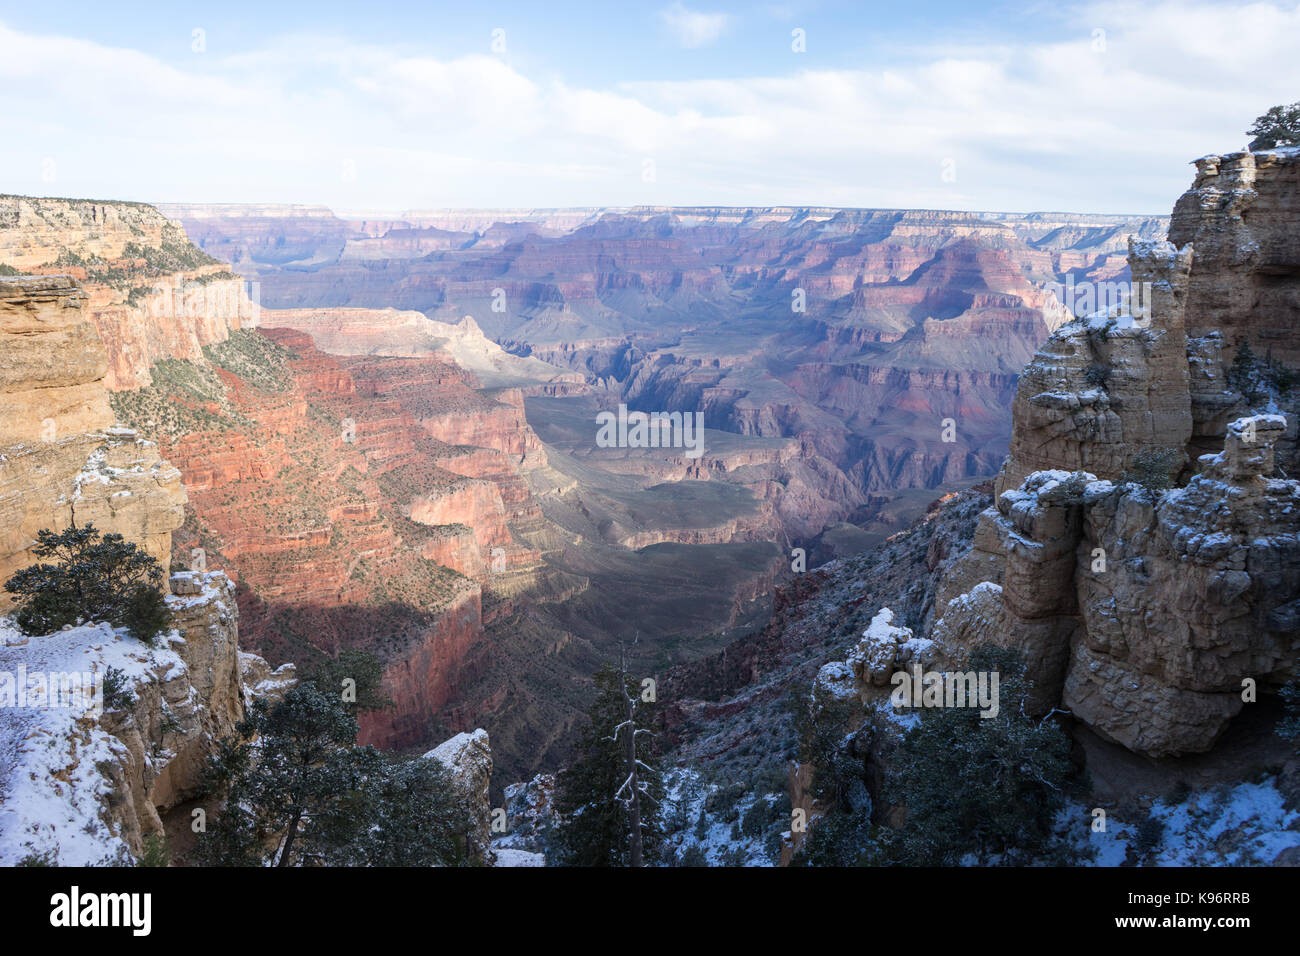 A view of the Grand Canyon from beginning of South Kaibab Trail. - Stock Image